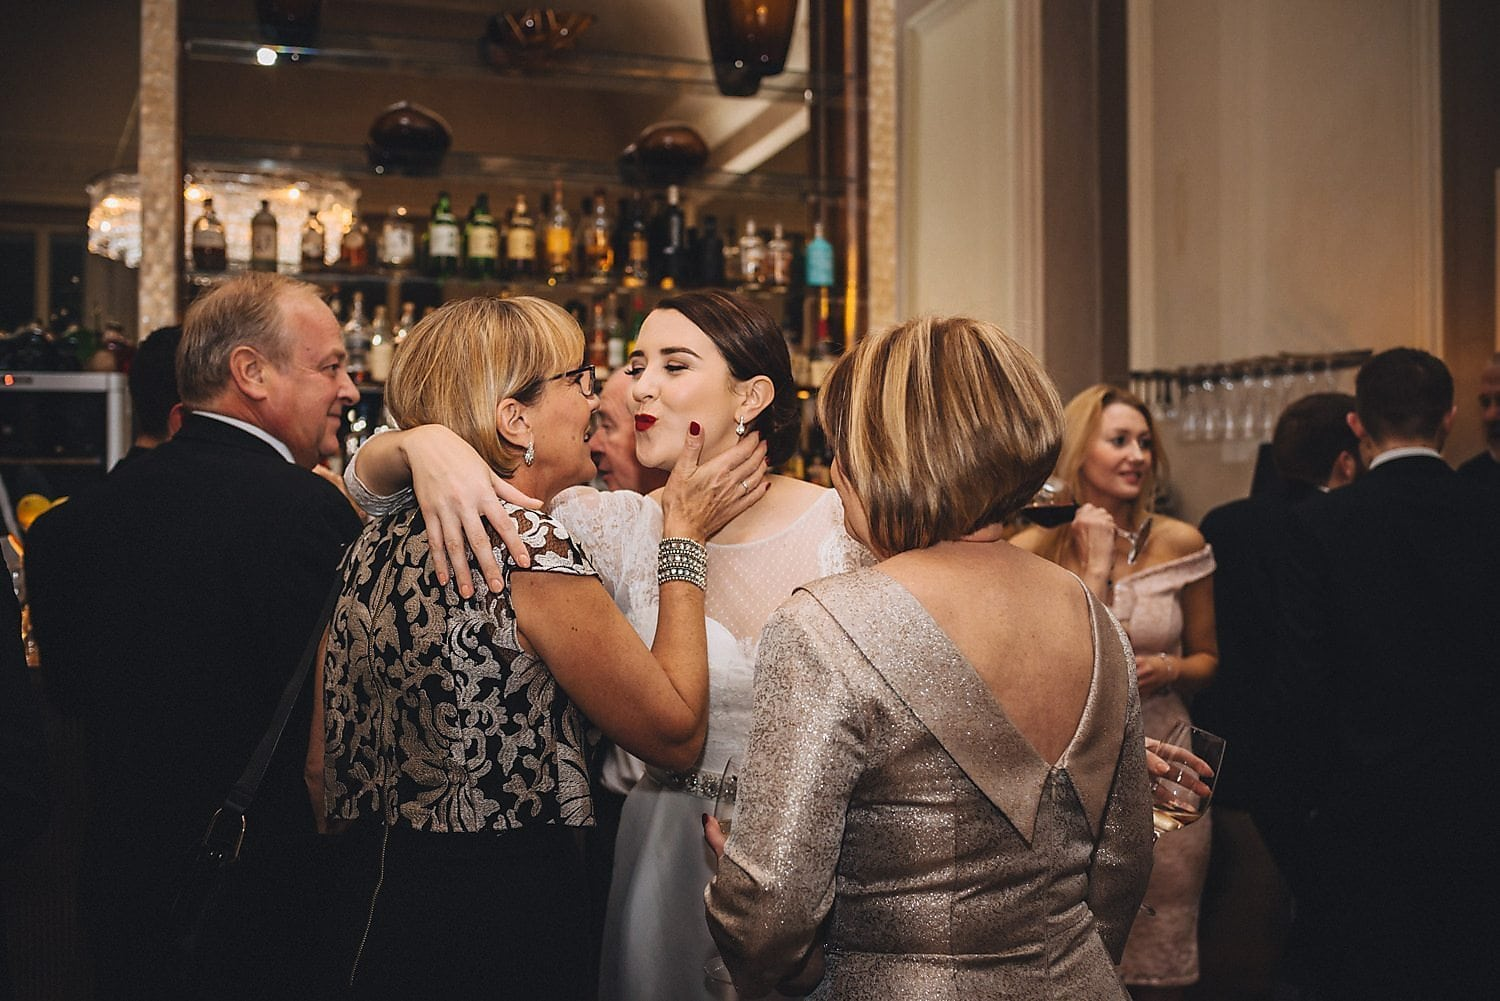 Bride greets guests with a kiss